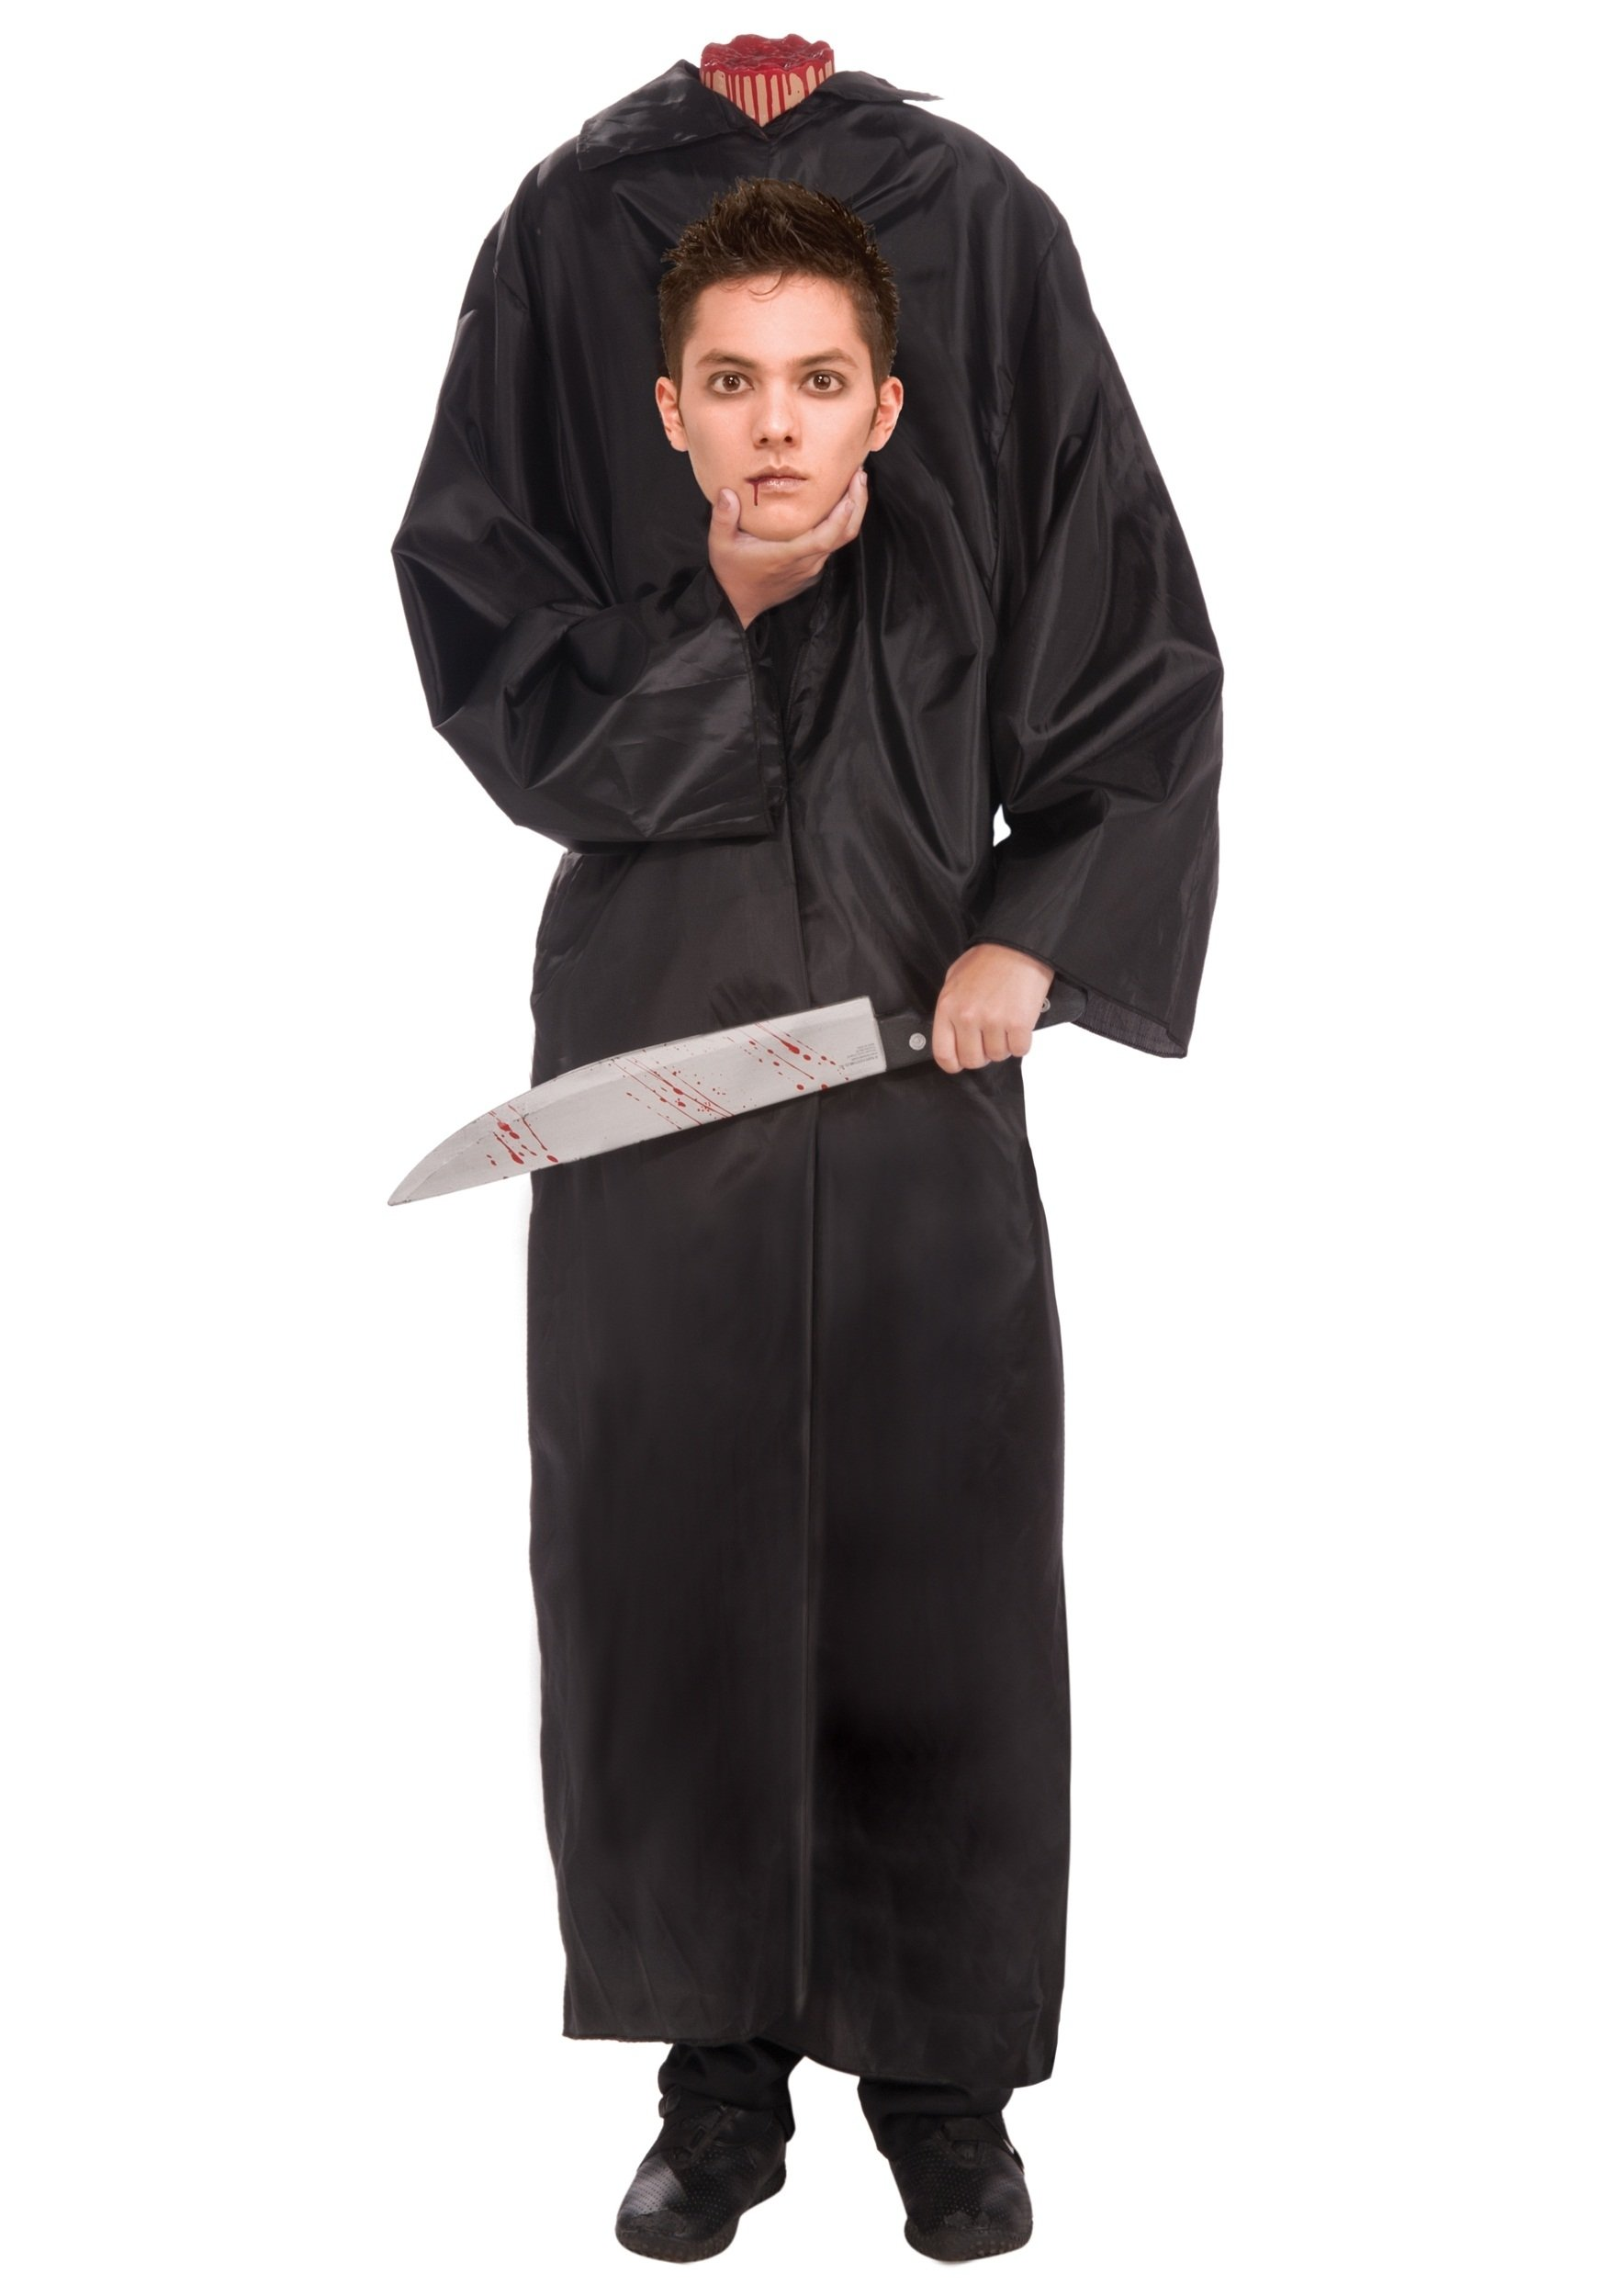 teen headless boy costume